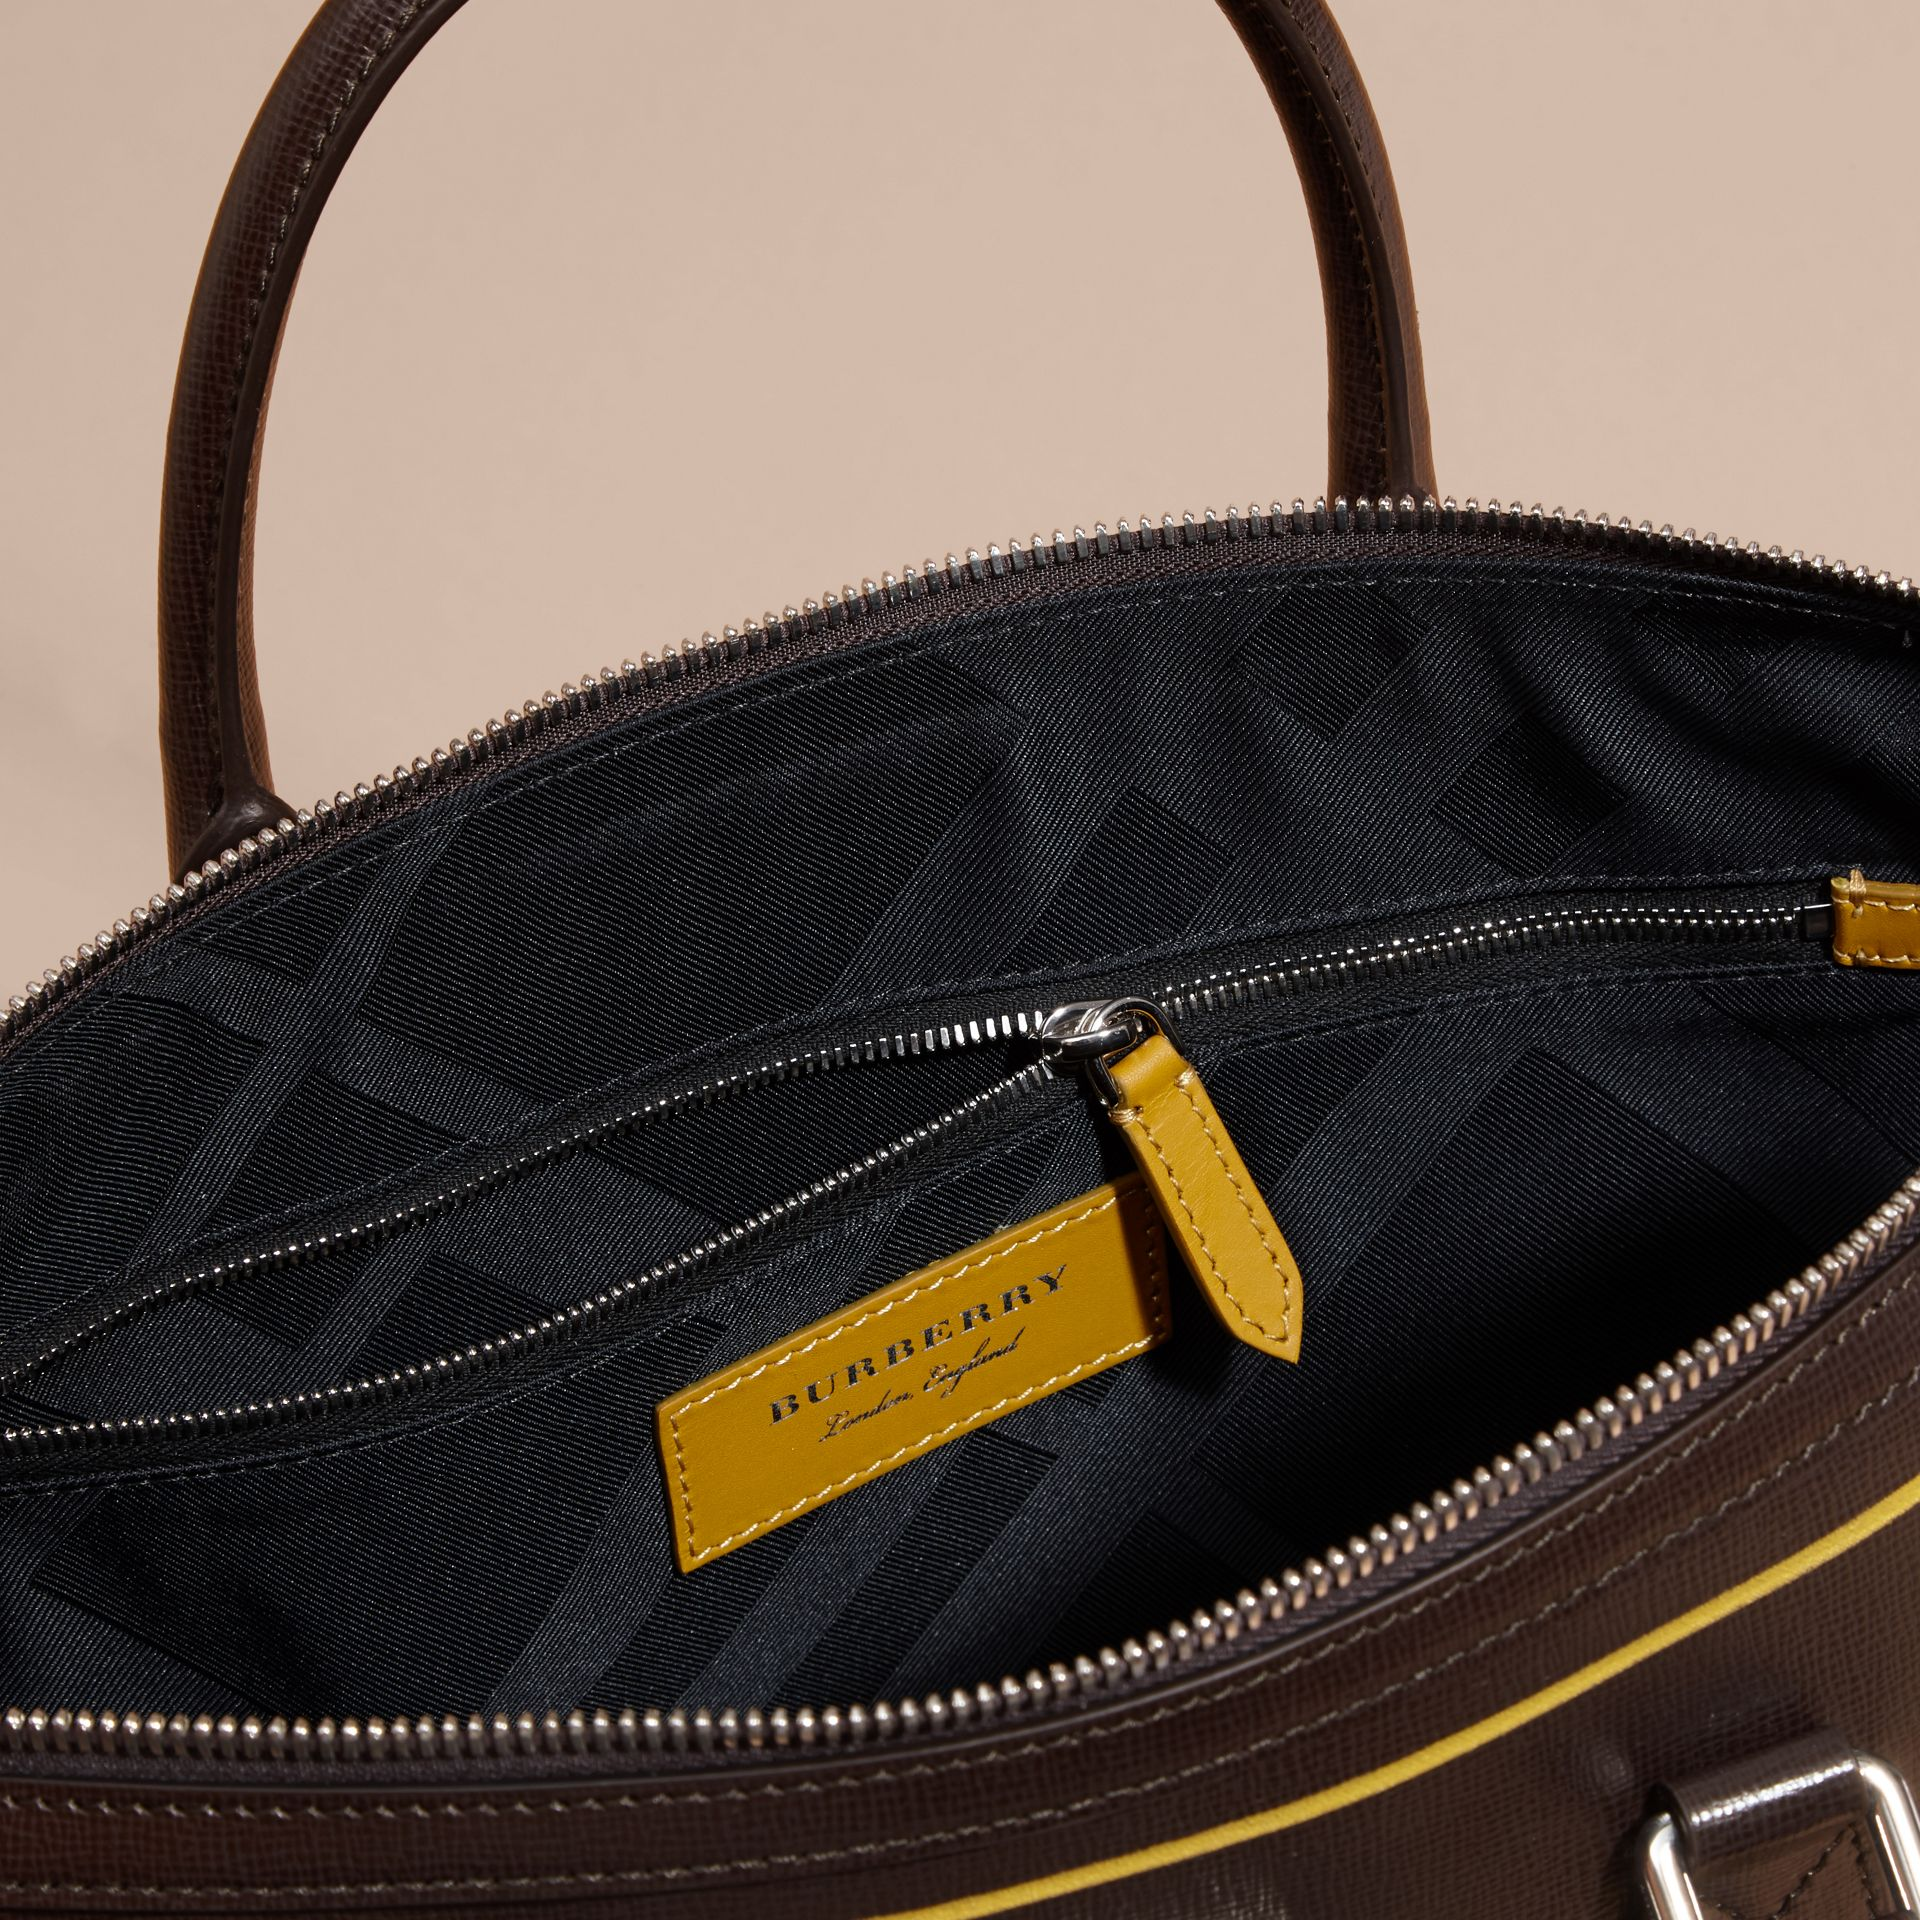 Sac The Barrow fin en cuir London avec bordure contrastante (Poivre) - Homme | Burberry - photo de la galerie 6